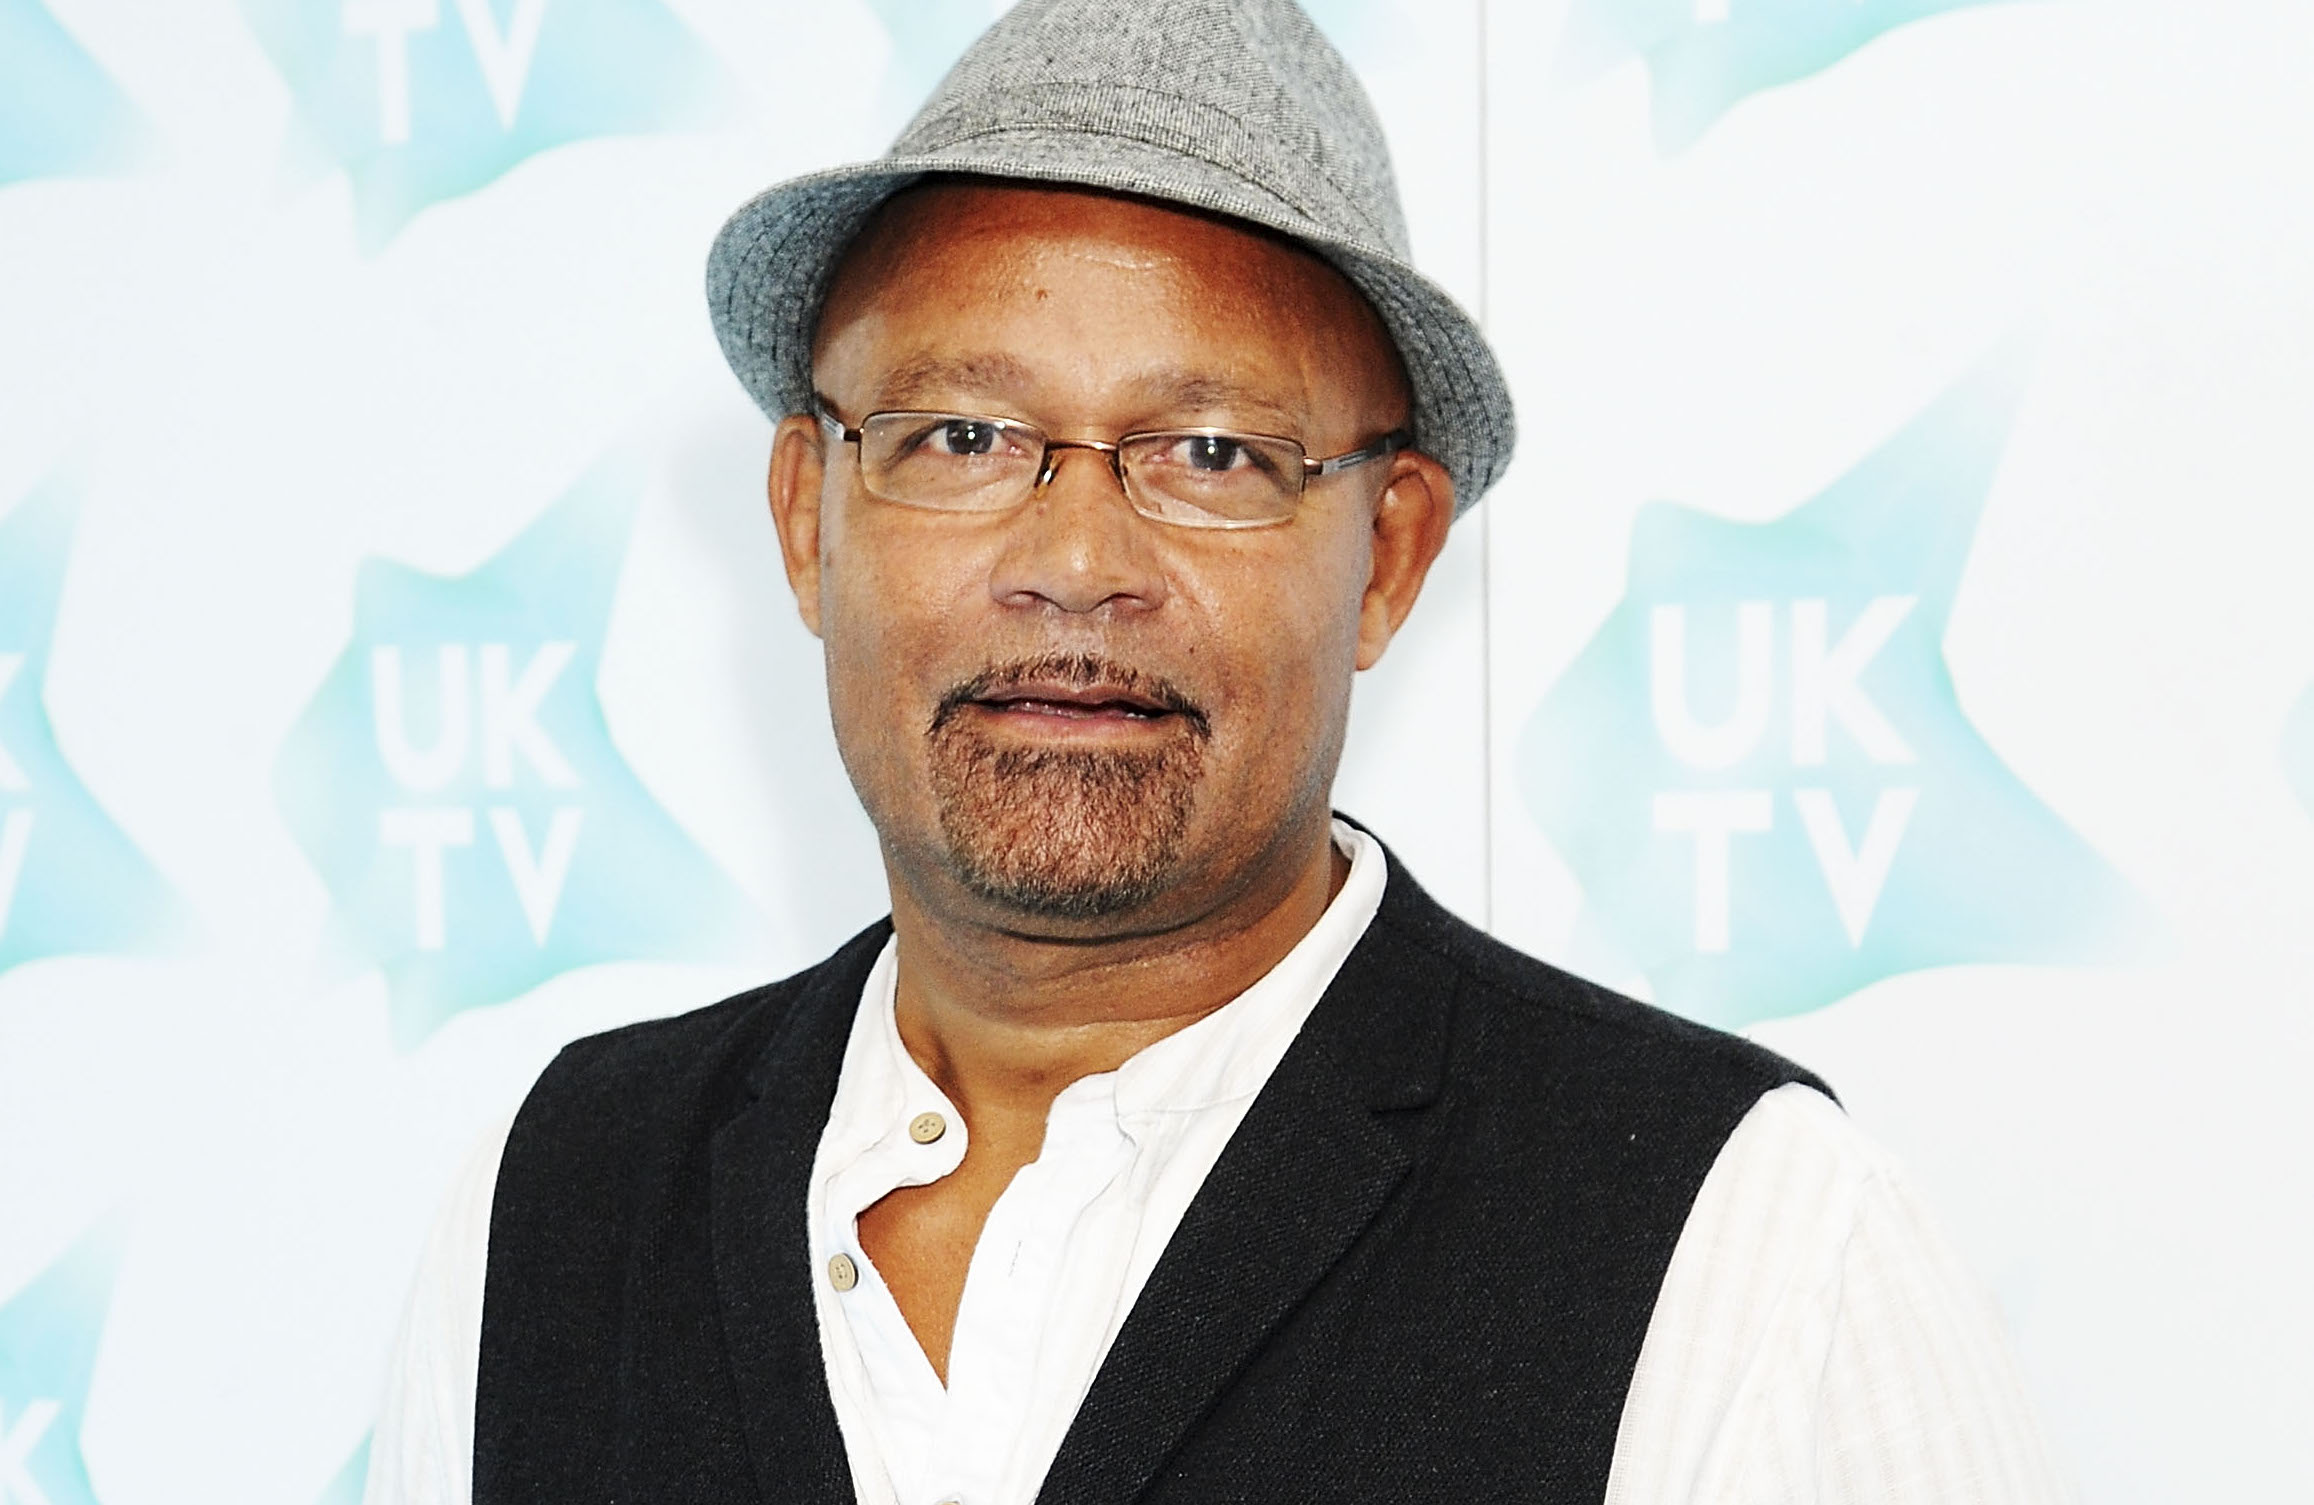 LONDON, ENGLAND - SEPTEMBER 06:  Louis Emerick attends UKTV Live 2016 at BFI Southbank on September 6, 2016 in London, England.  (Photo by Dave J Hogan/Dave J Hogan/Getty Images)